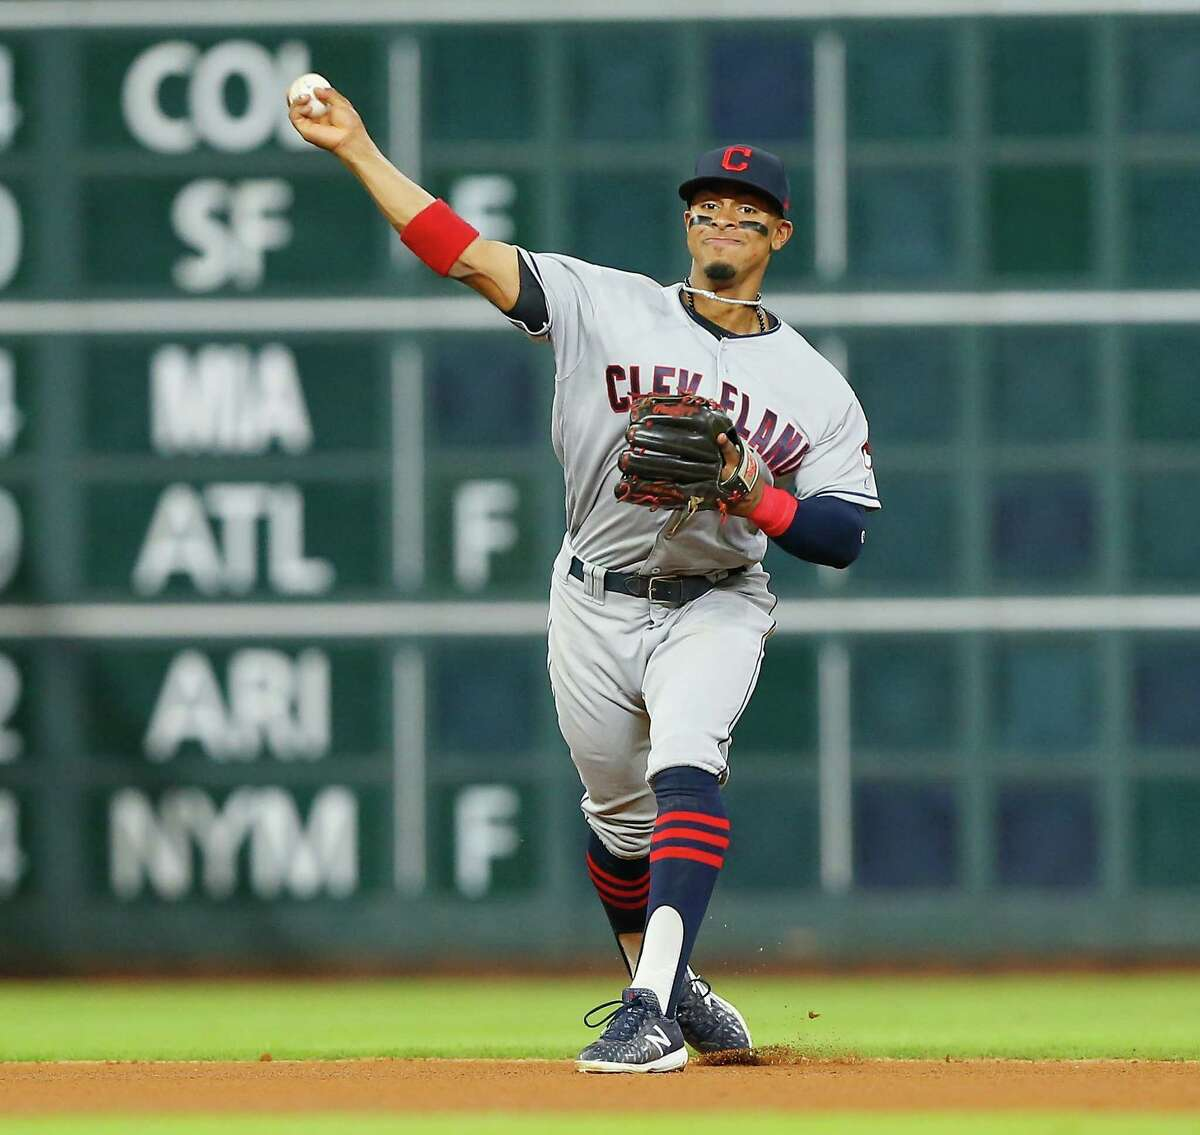 HOUSTON, TX - MAY 20: Francisco Lindor #12 of the Cleveland Indians throws to first base to retire Yuli Gurriel #10 of the Houston Astros in the fourth inning at Minute Maid Park on May 20, 2018 in Houston, Texas.